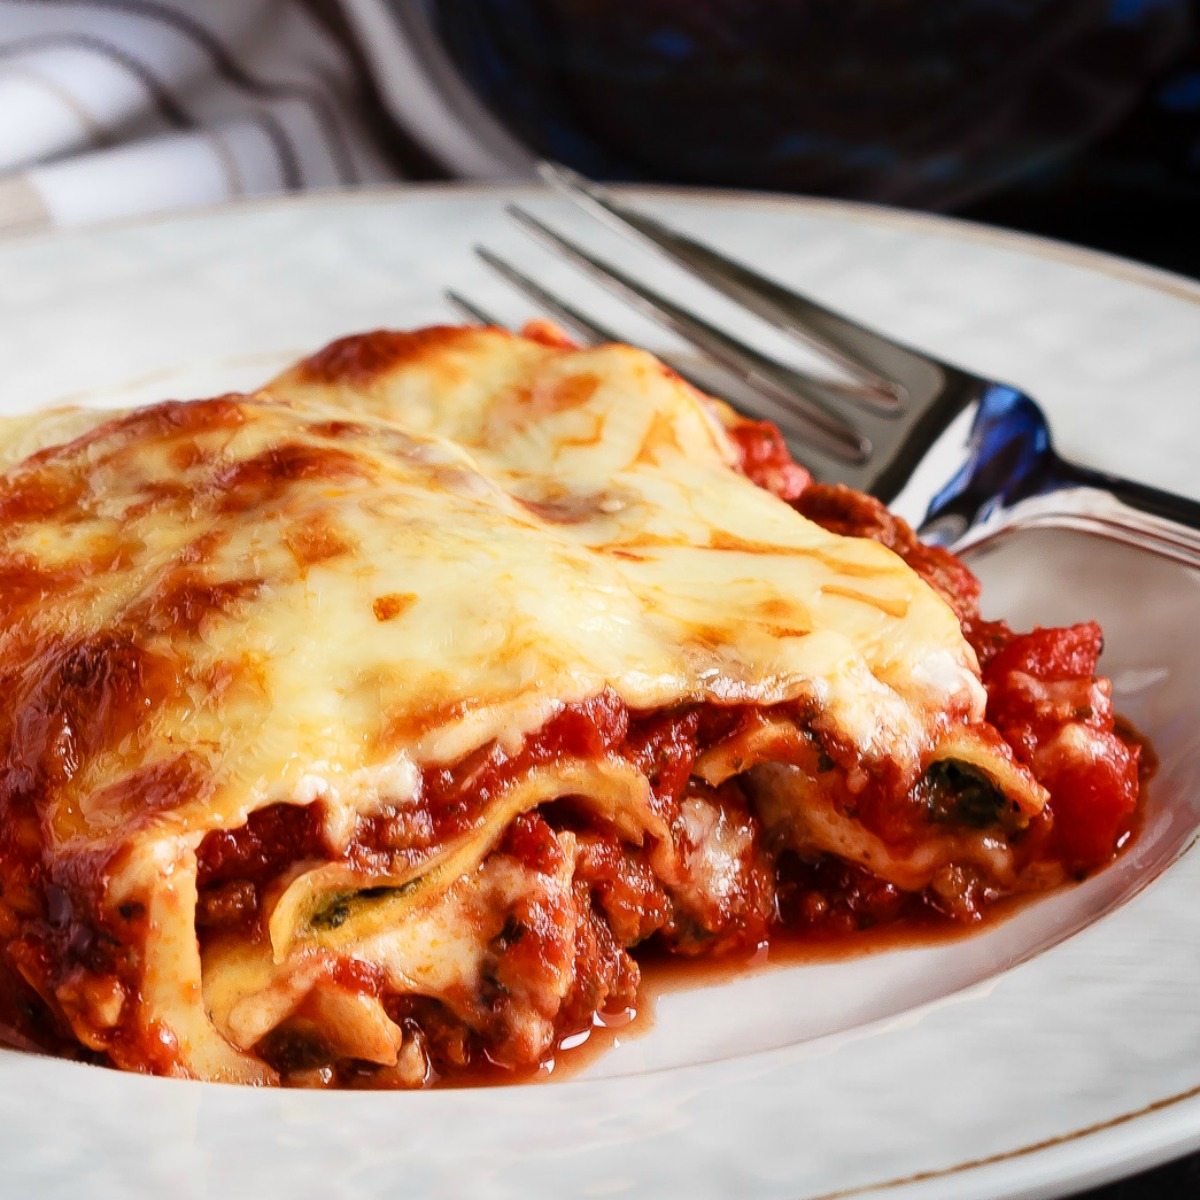 An easier and faster version of a favorite pasta dish, this ravioli lasagna is absolutely amazing. Quick to make and tastes like the real thing!